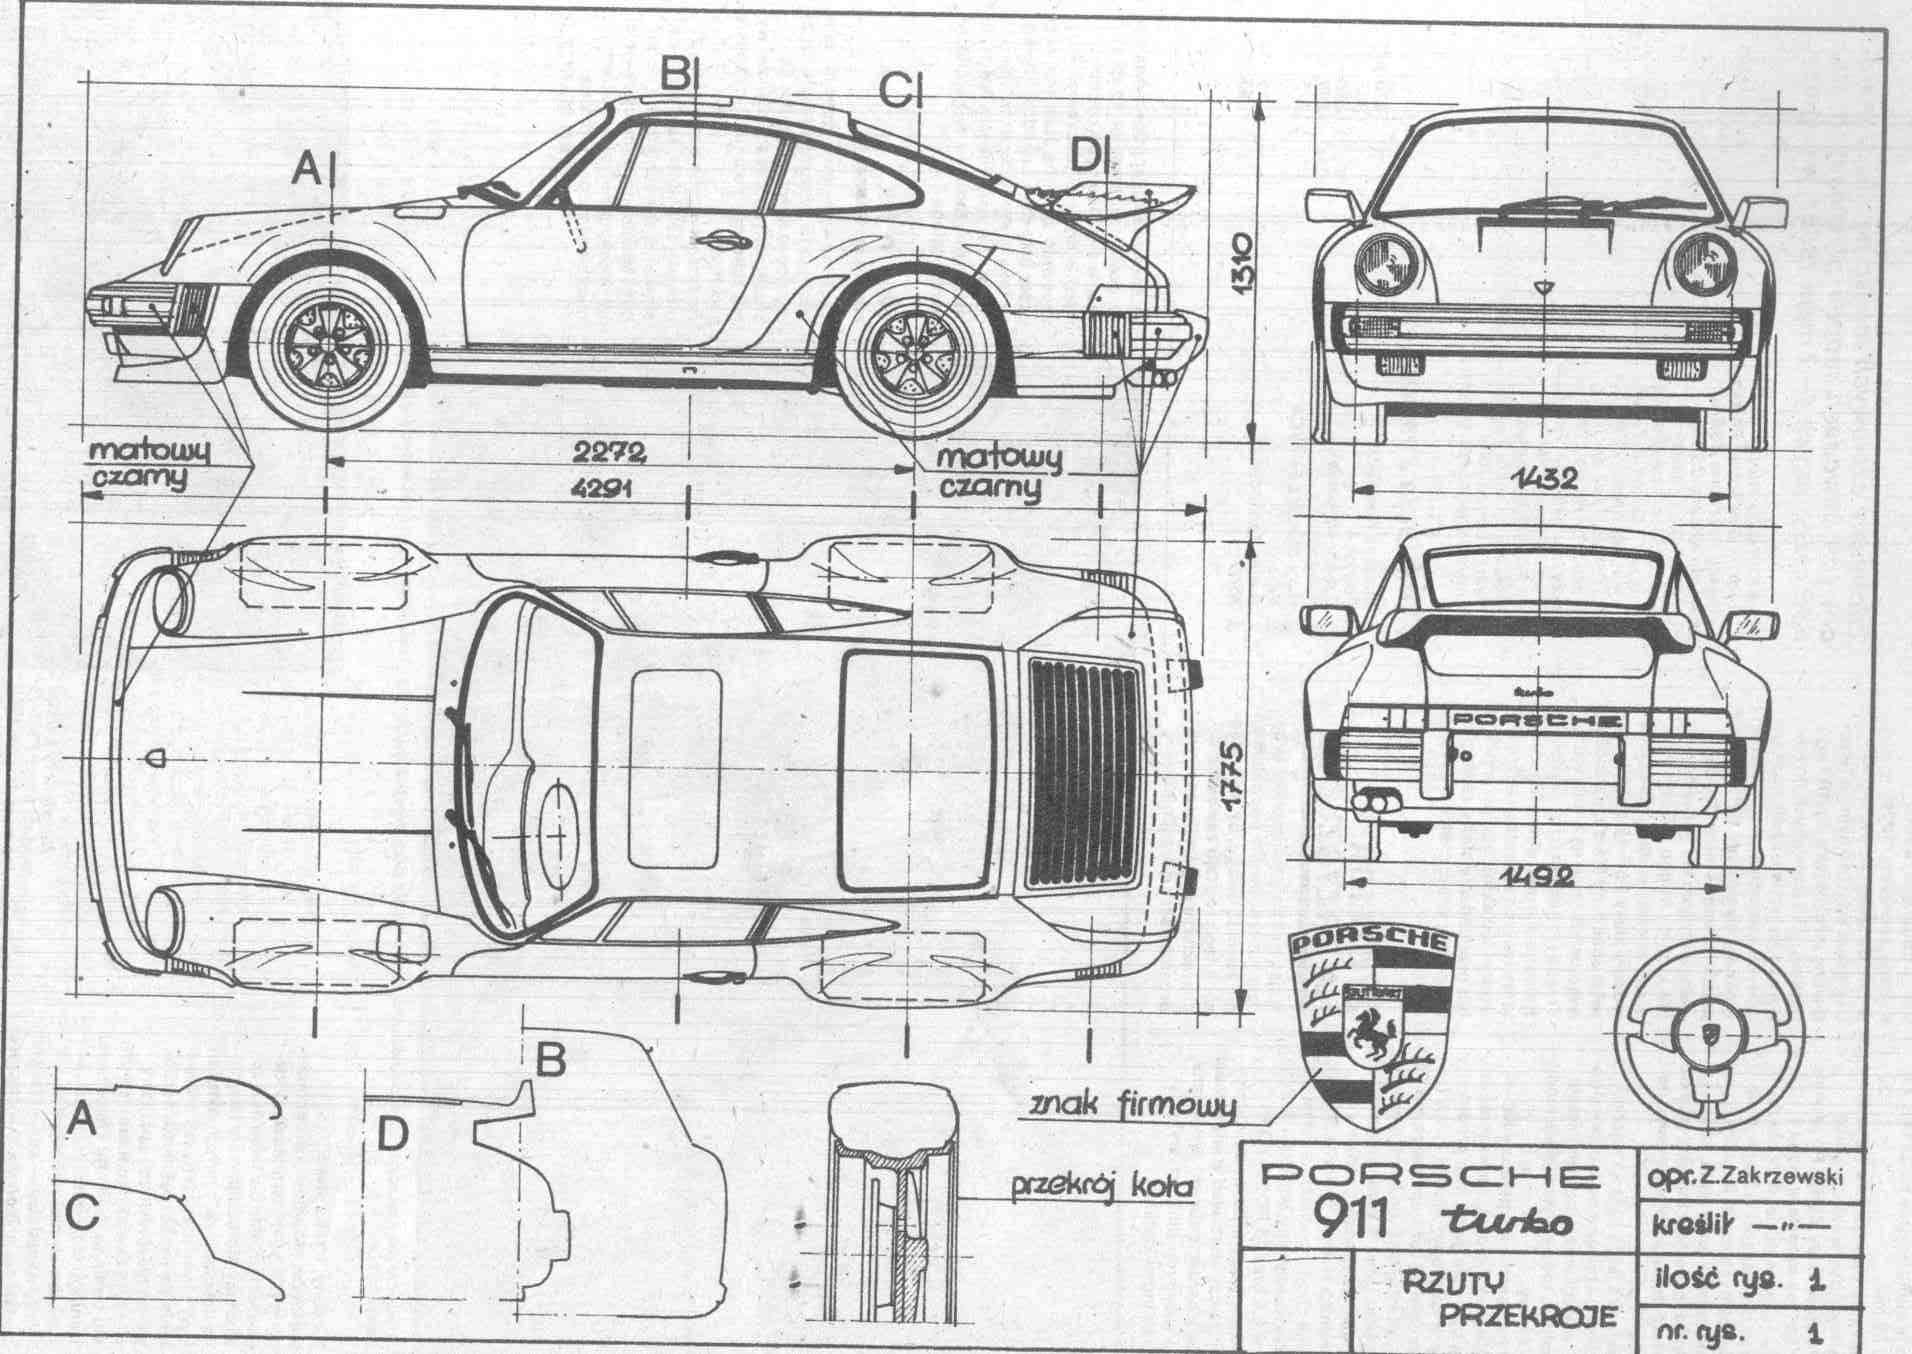 Ktm X Bow >> Porsche 911 Turbo Blueprint - Download free blueprint for 3D modeling